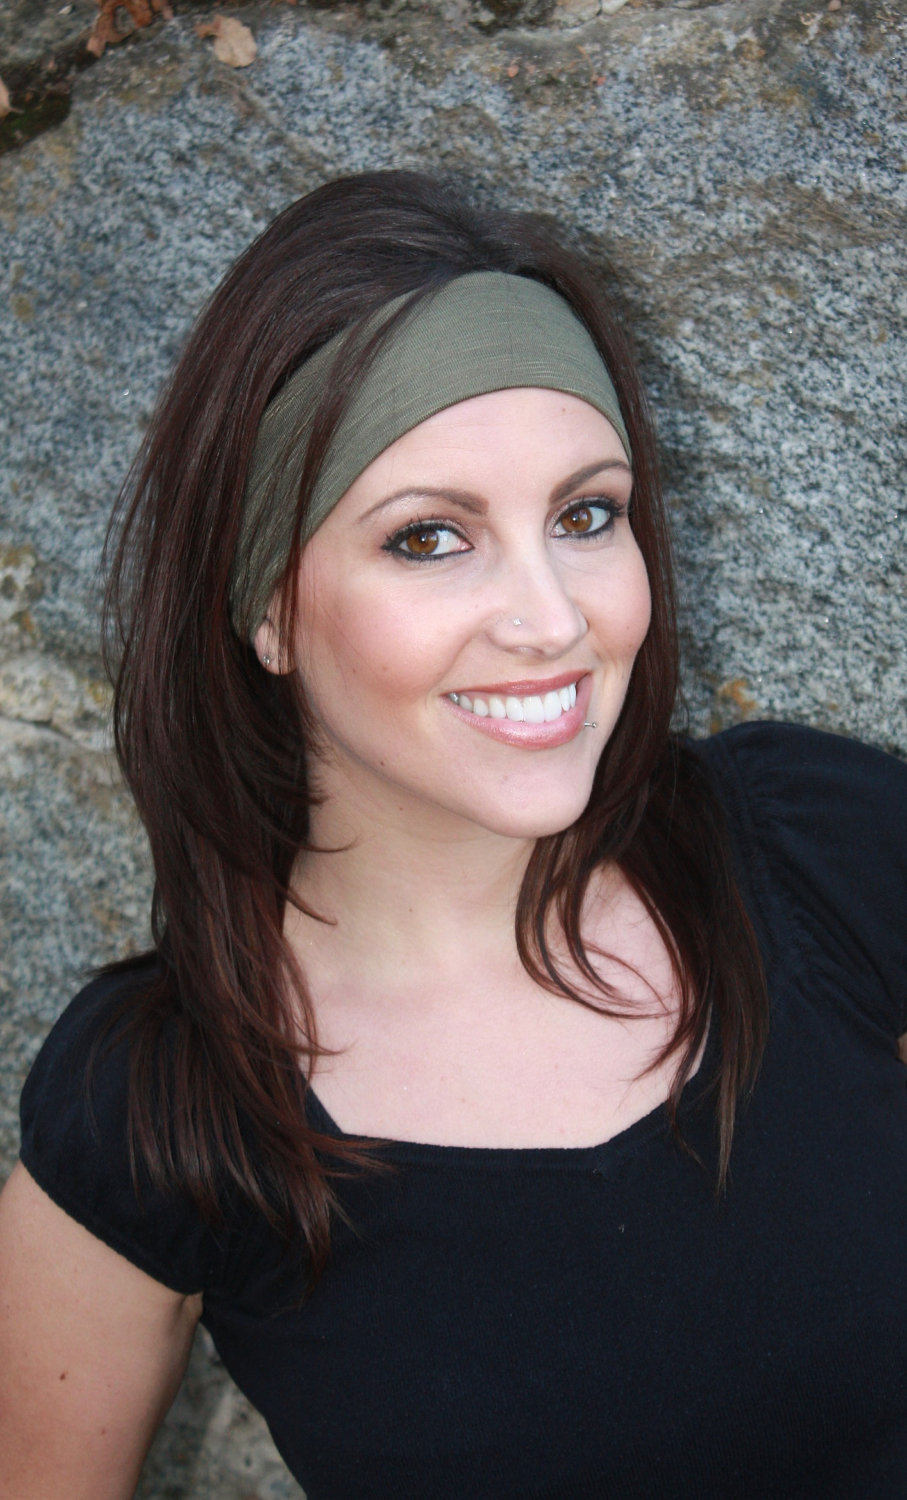 Super Soft Wide Stretch Knit Headband, Yoga Hairband, Unisex Bandana- Forest Green